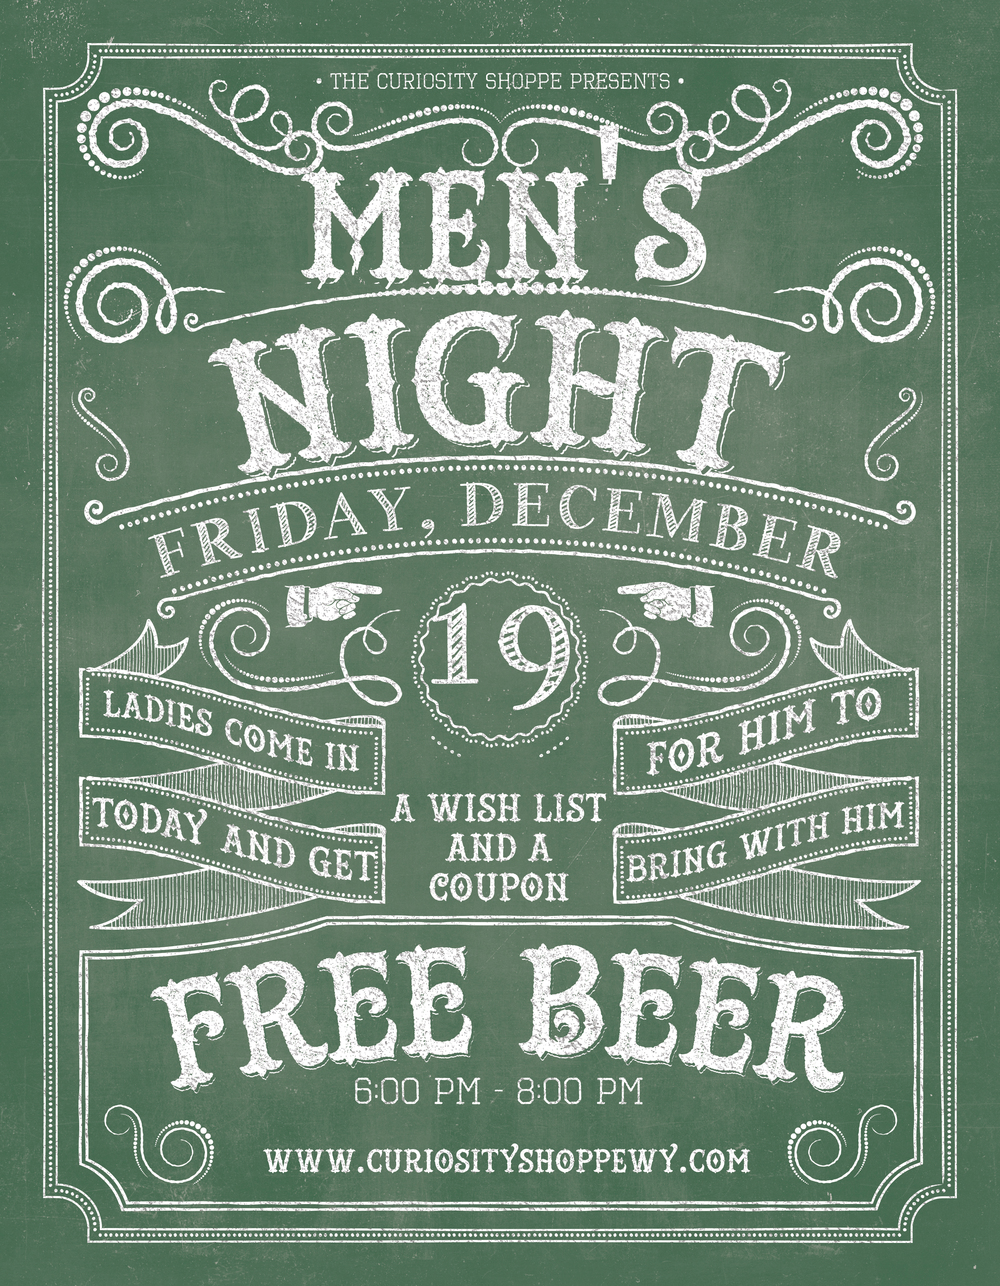 Curiosity Shoppe Men's Night Advertisement